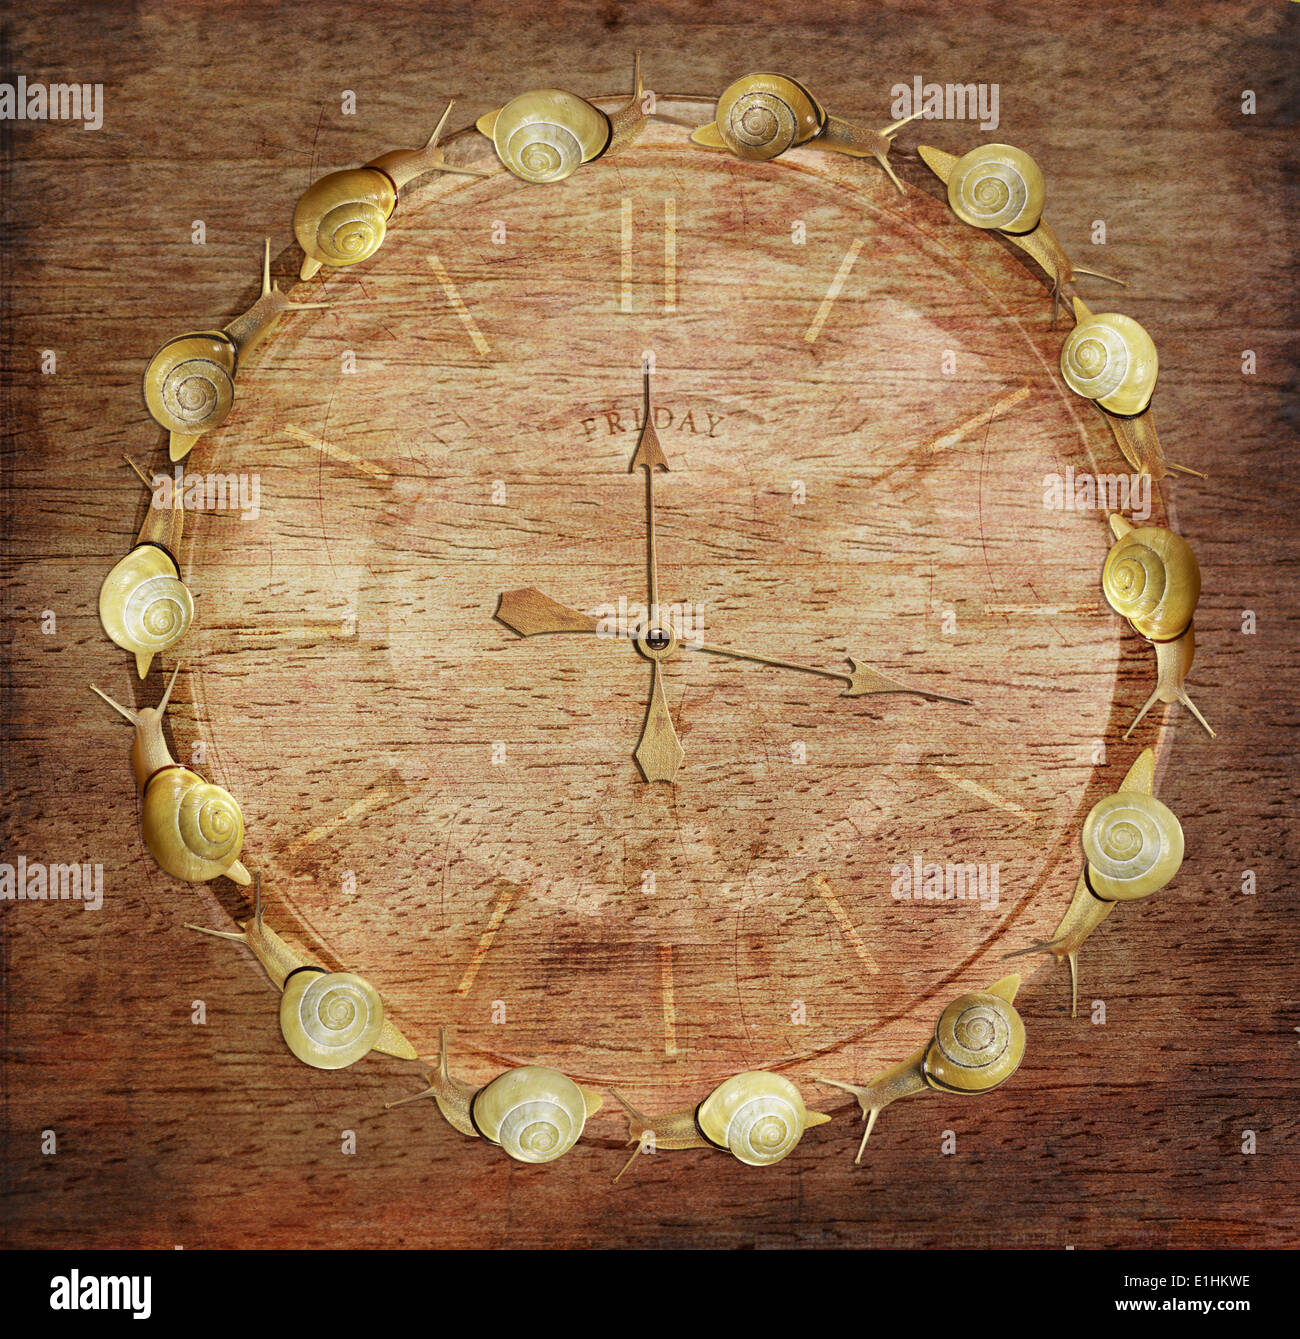 Slow Time. Retro Watch with Snails on Wood. Art Concept - Stock Image